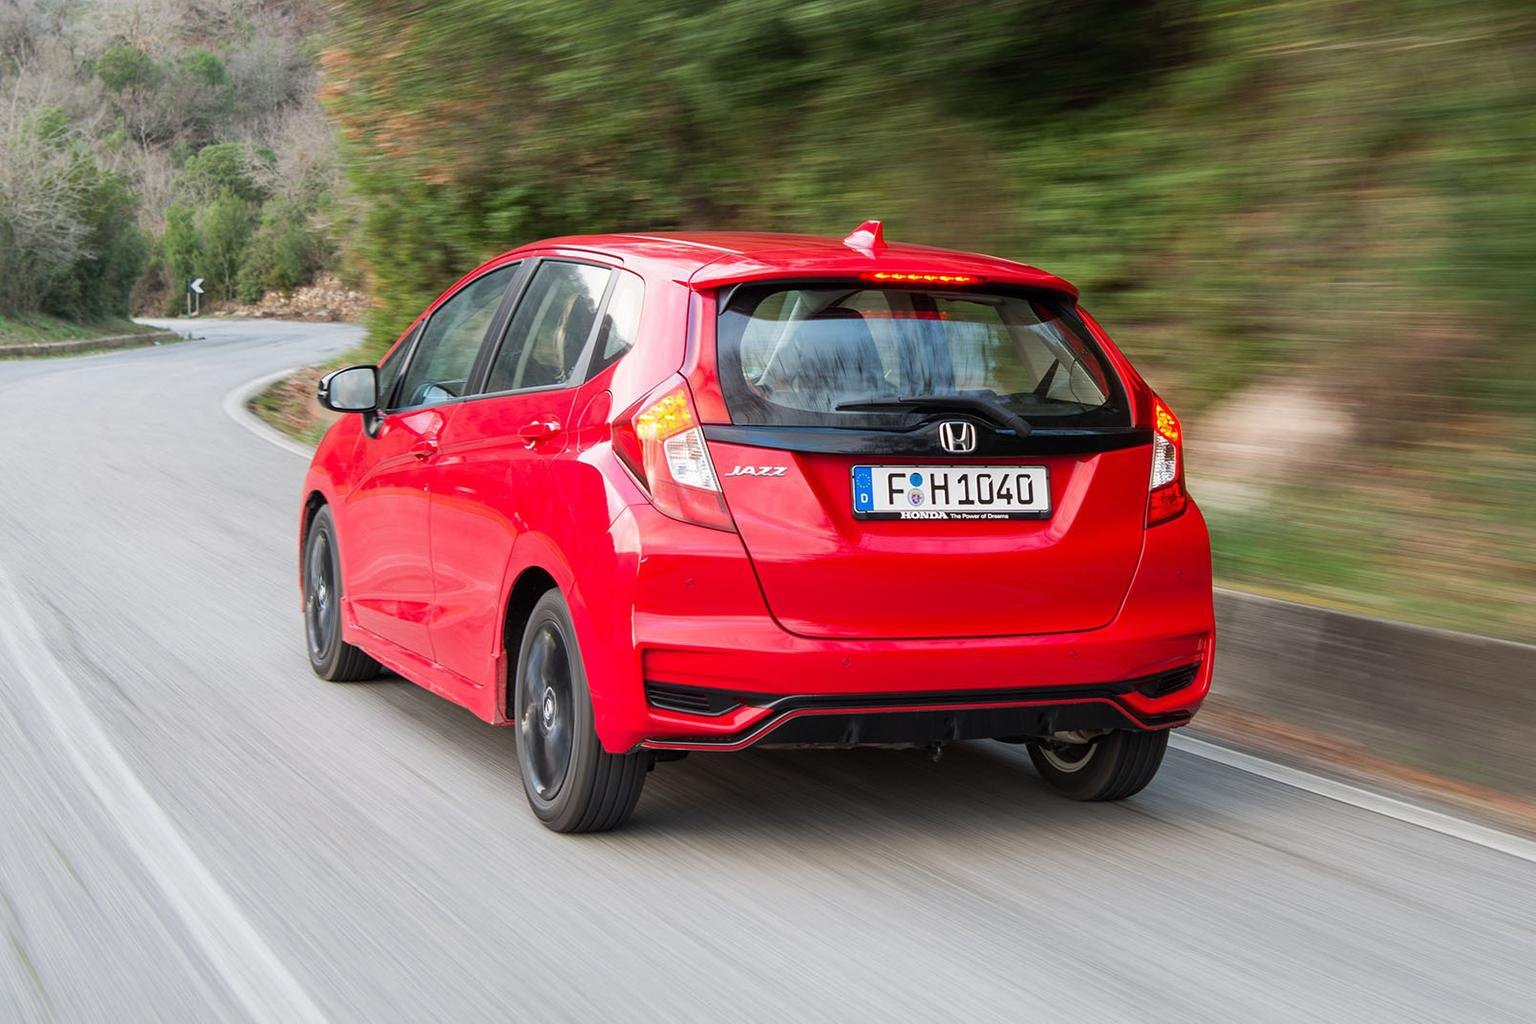 2018 Honda Jazz 1.5 i-VTEC review - verdict